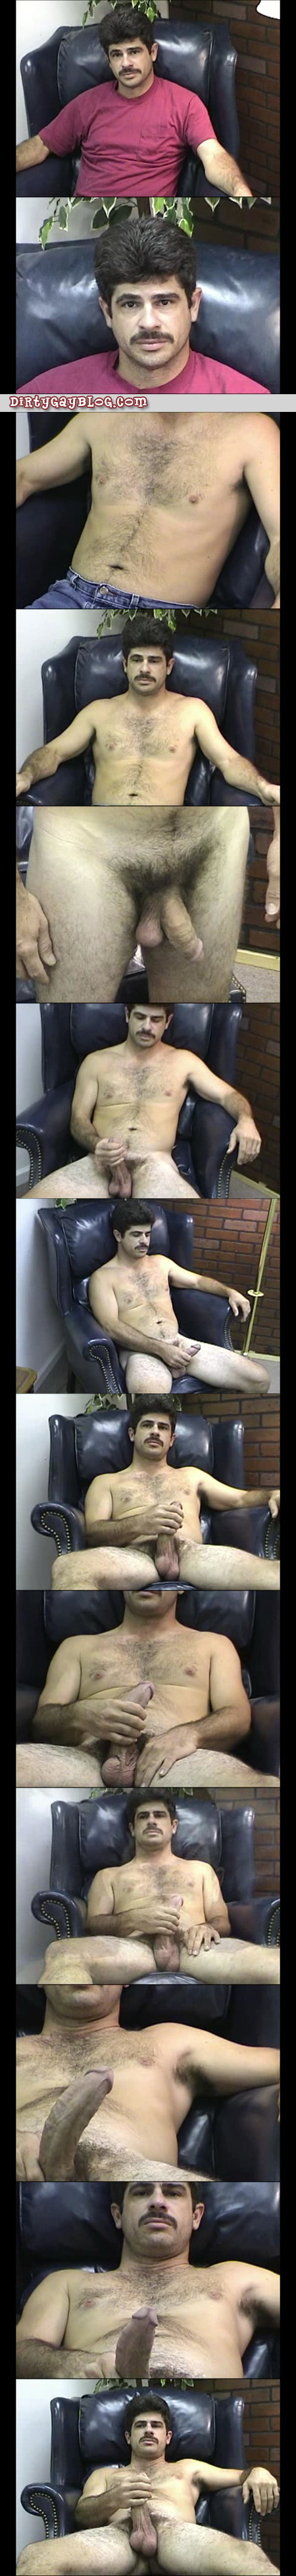 Mustachioed straight man in the nude jacking off.